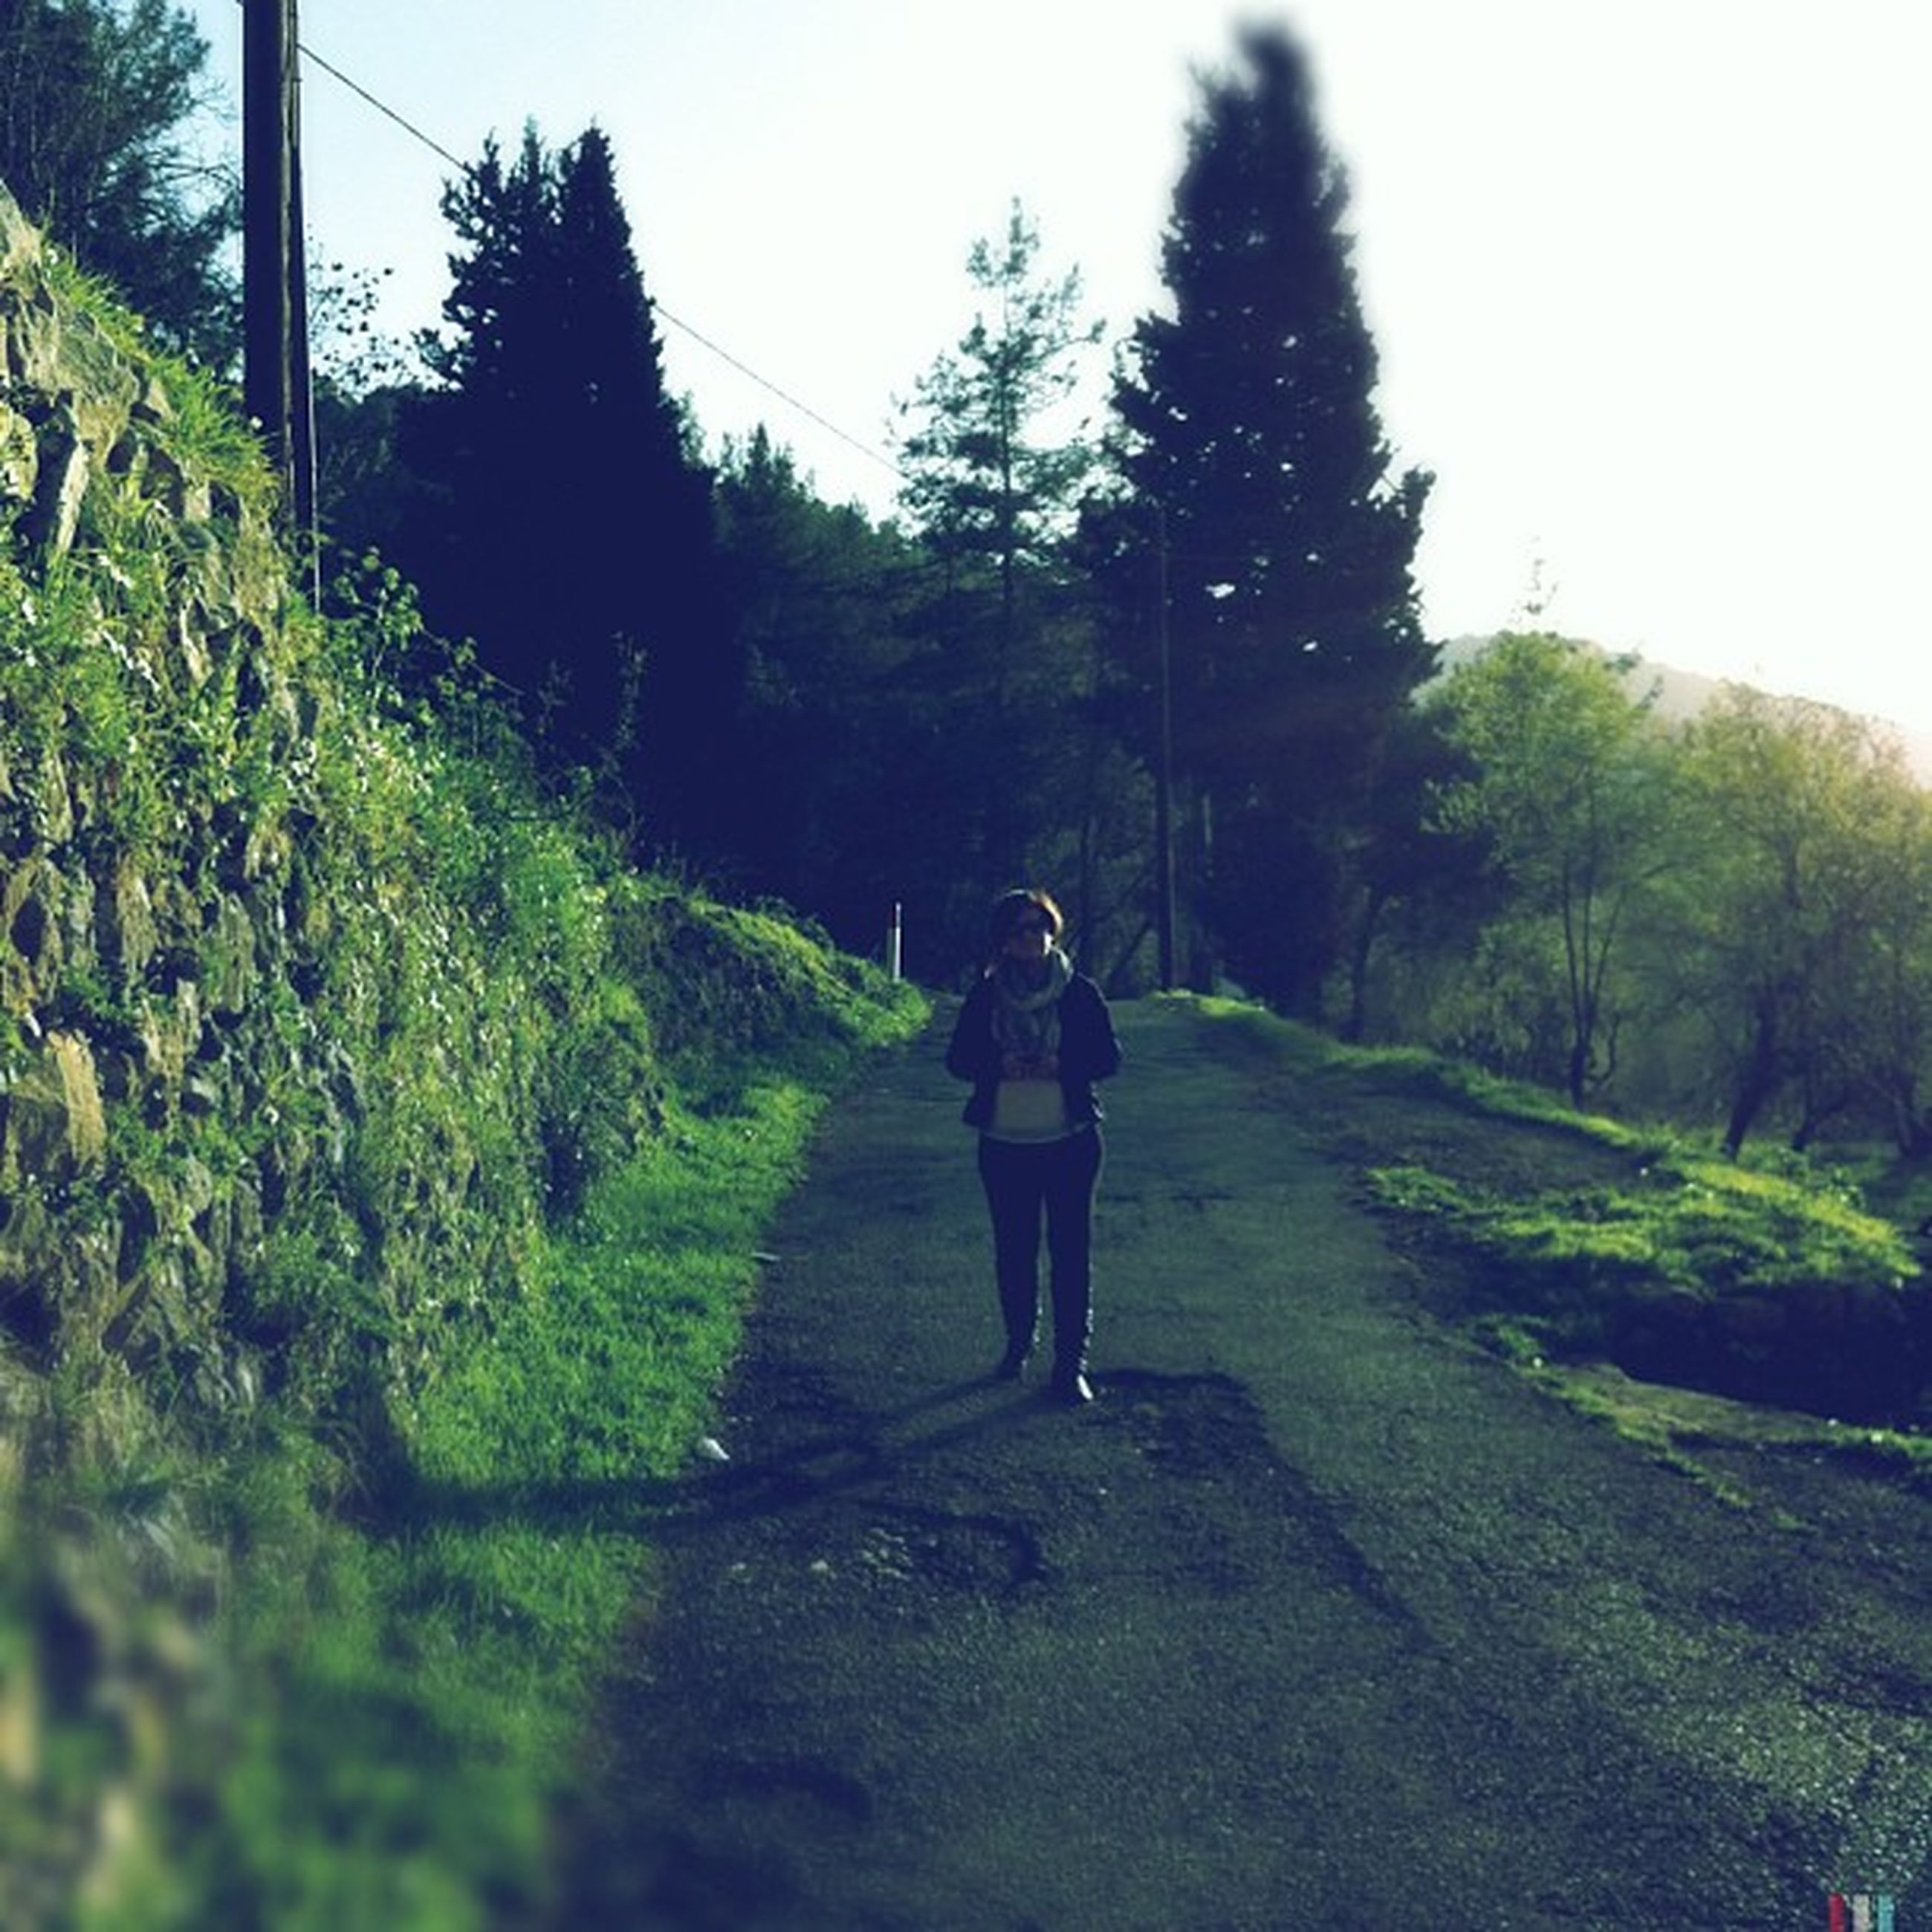 full length, lifestyles, tree, rear view, grass, green color, casual clothing, leisure activity, walking, growth, plant, standing, clear sky, men, the way forward, day, road, nature